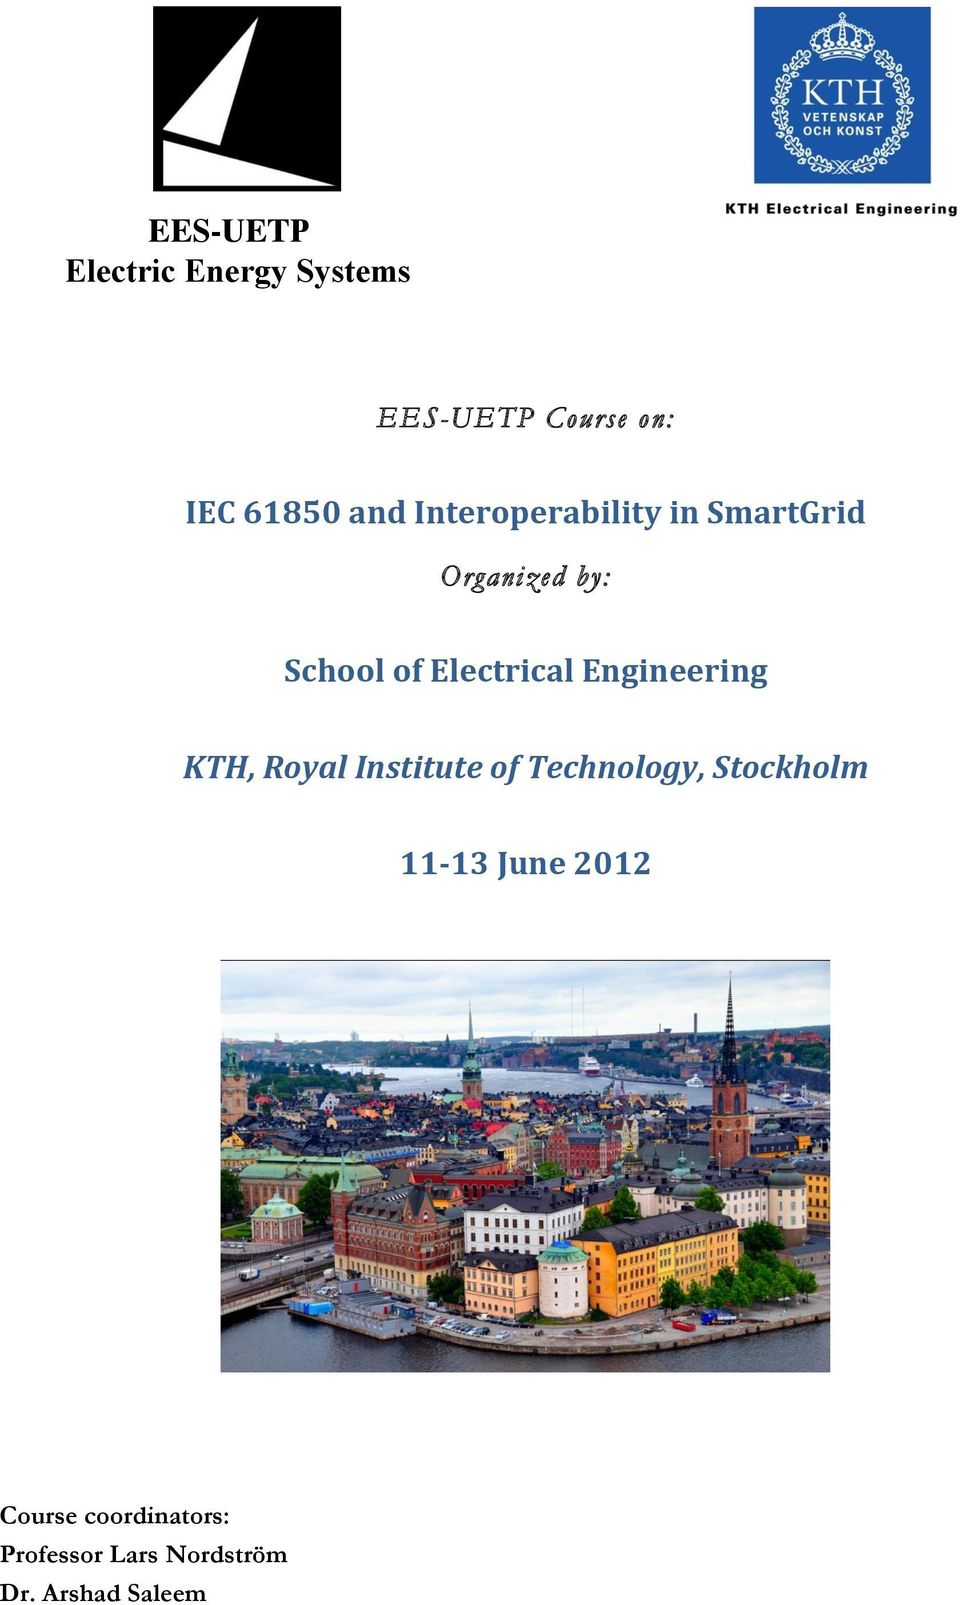 Engineering KTH, Royal Institute of Technology, Stockholm 11-13